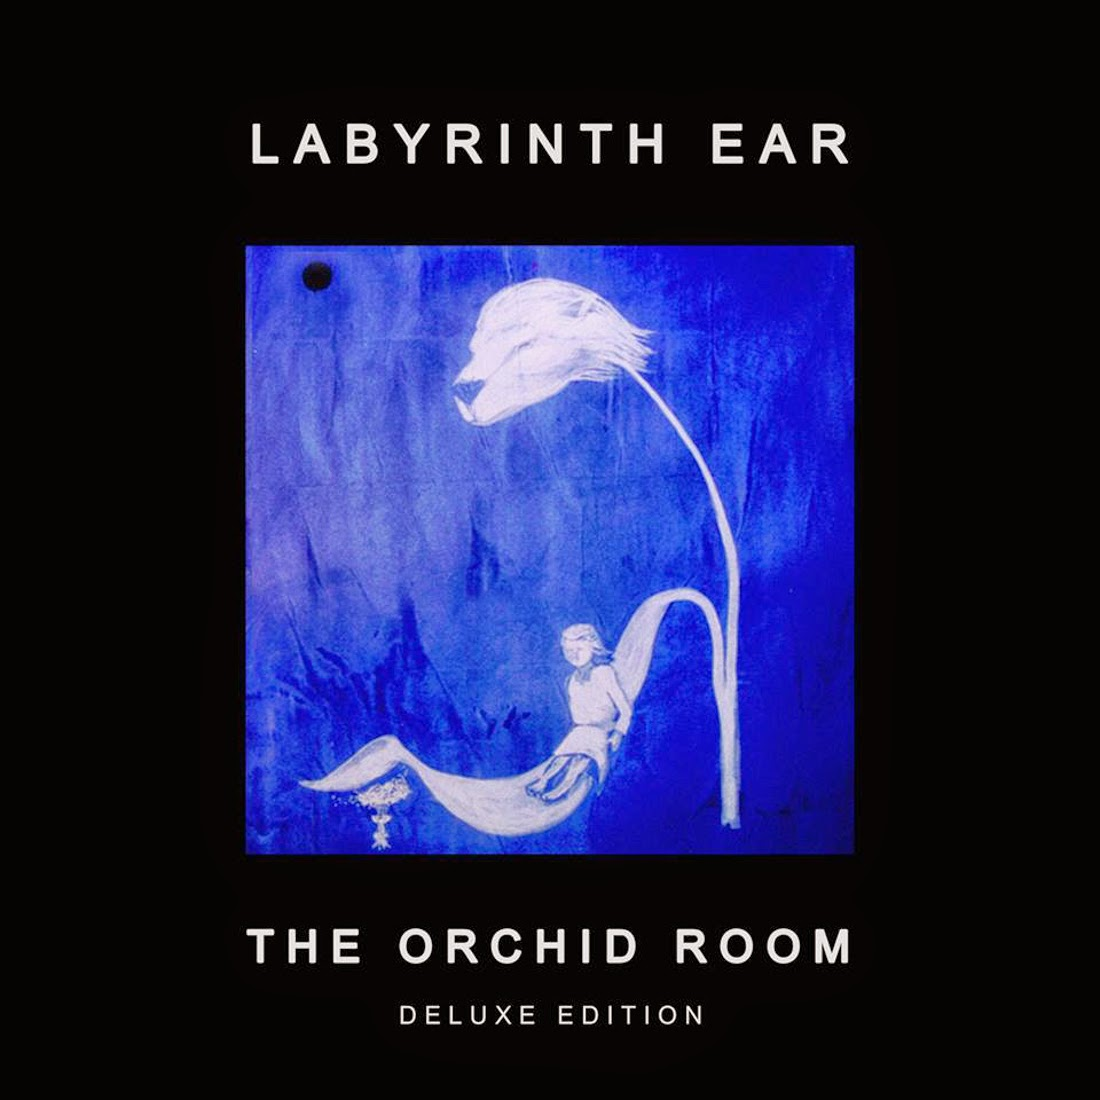 http://www.d4am.net/2014/09/labyrinth-ear-orchid-room.html